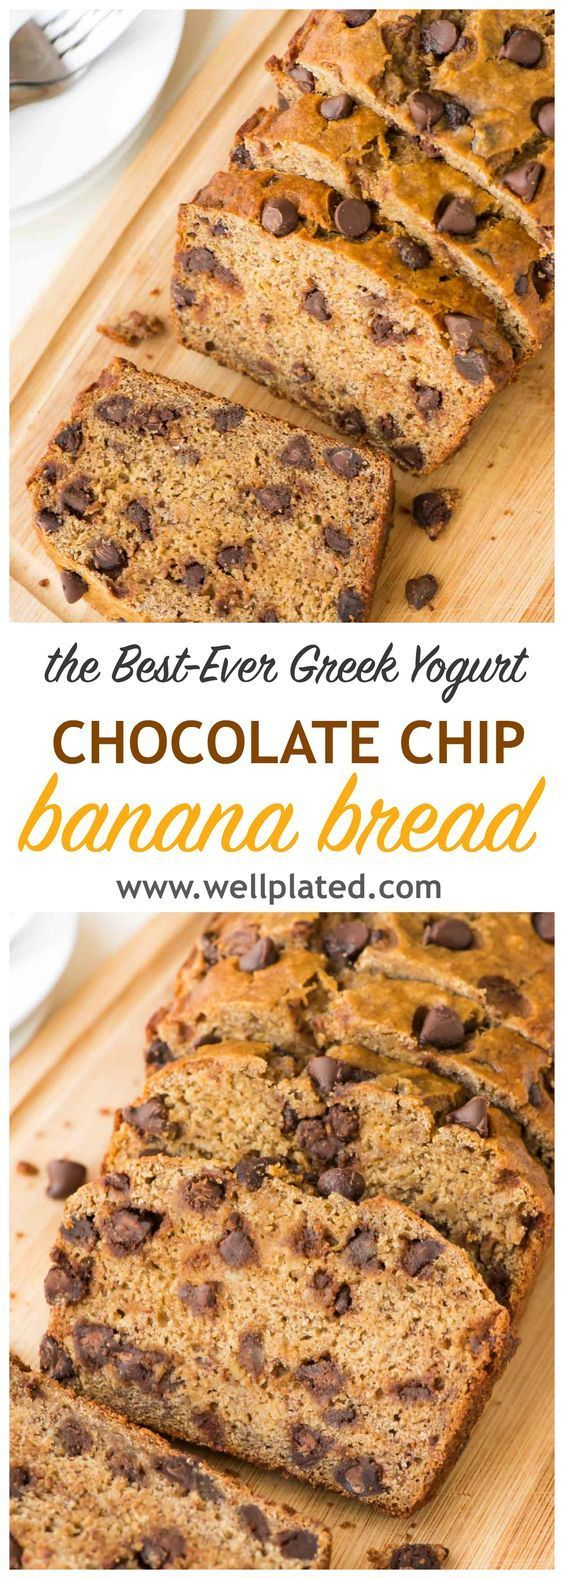 Fluffy, delicious healthy banana bread recipe made with Greek yogurt to keep it moist and chocolate chips for a little indulgence. EASY to make and SO GOOD. @wellplated http://www.wellplated.com